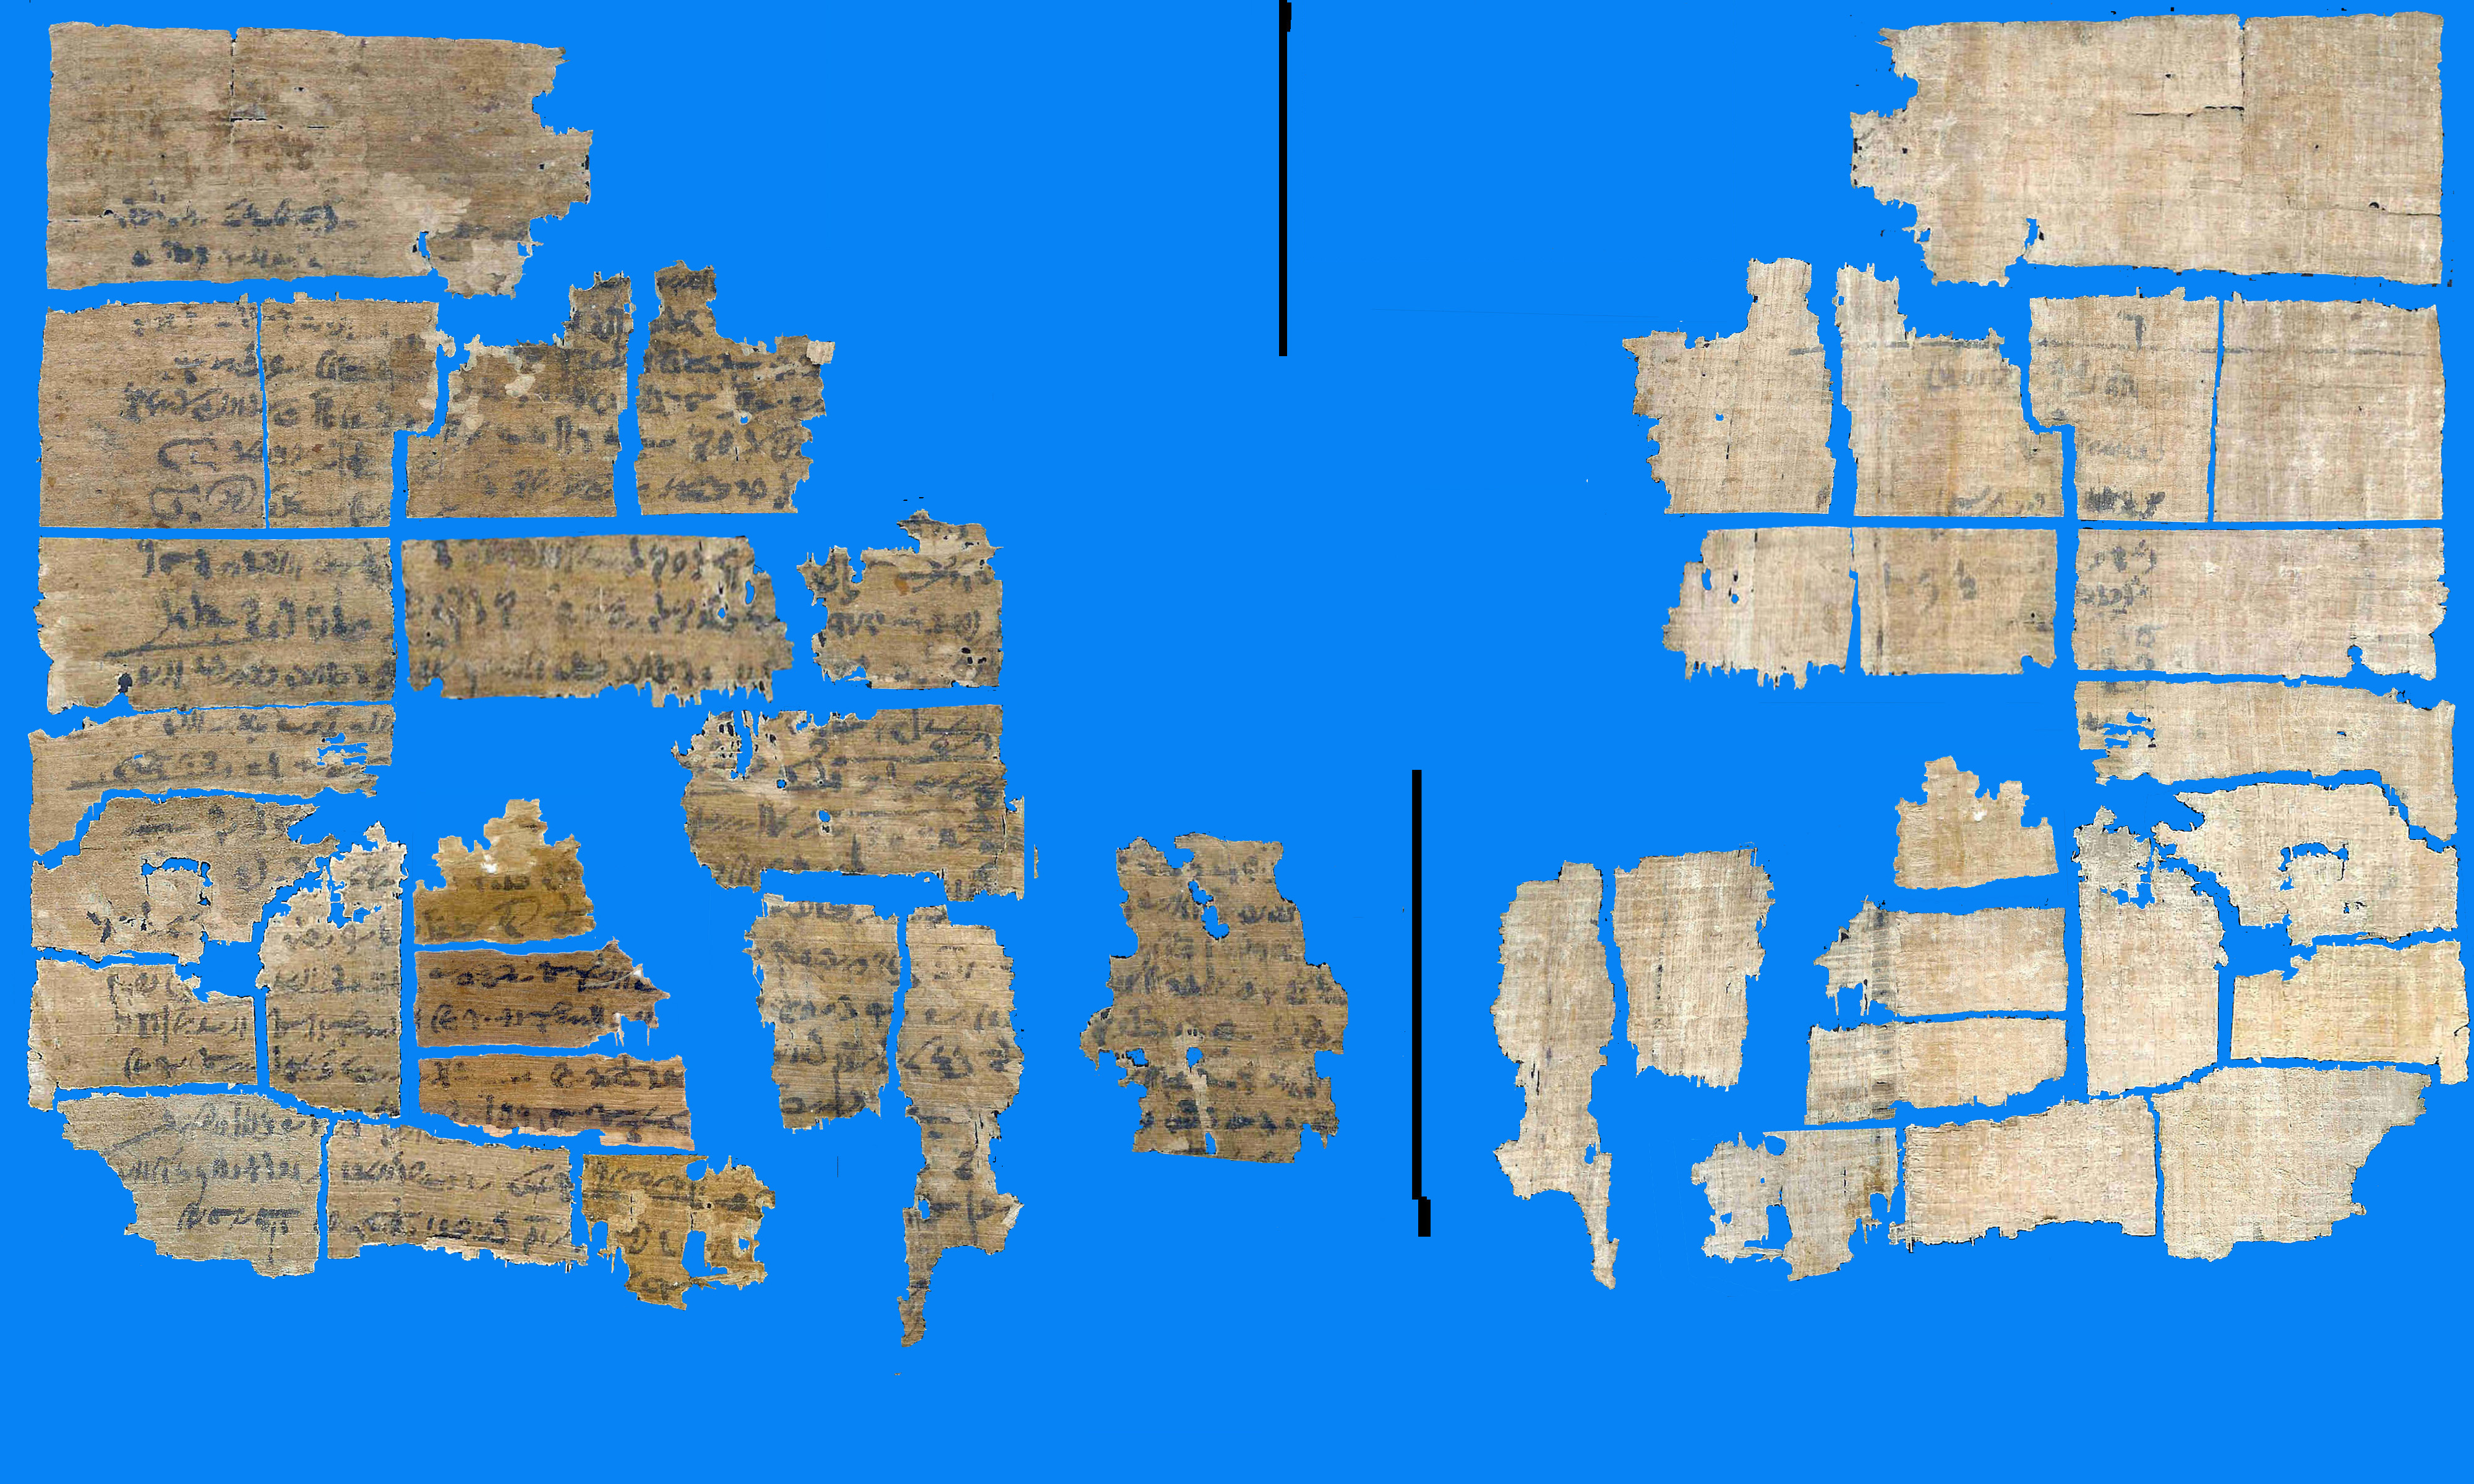 Papyri and related materials at the university of pennsylvania reconstructions of dismembered images winged figures now fragmented and here striped design red pink design heiratic with closeup demotic gumiabroncs Images